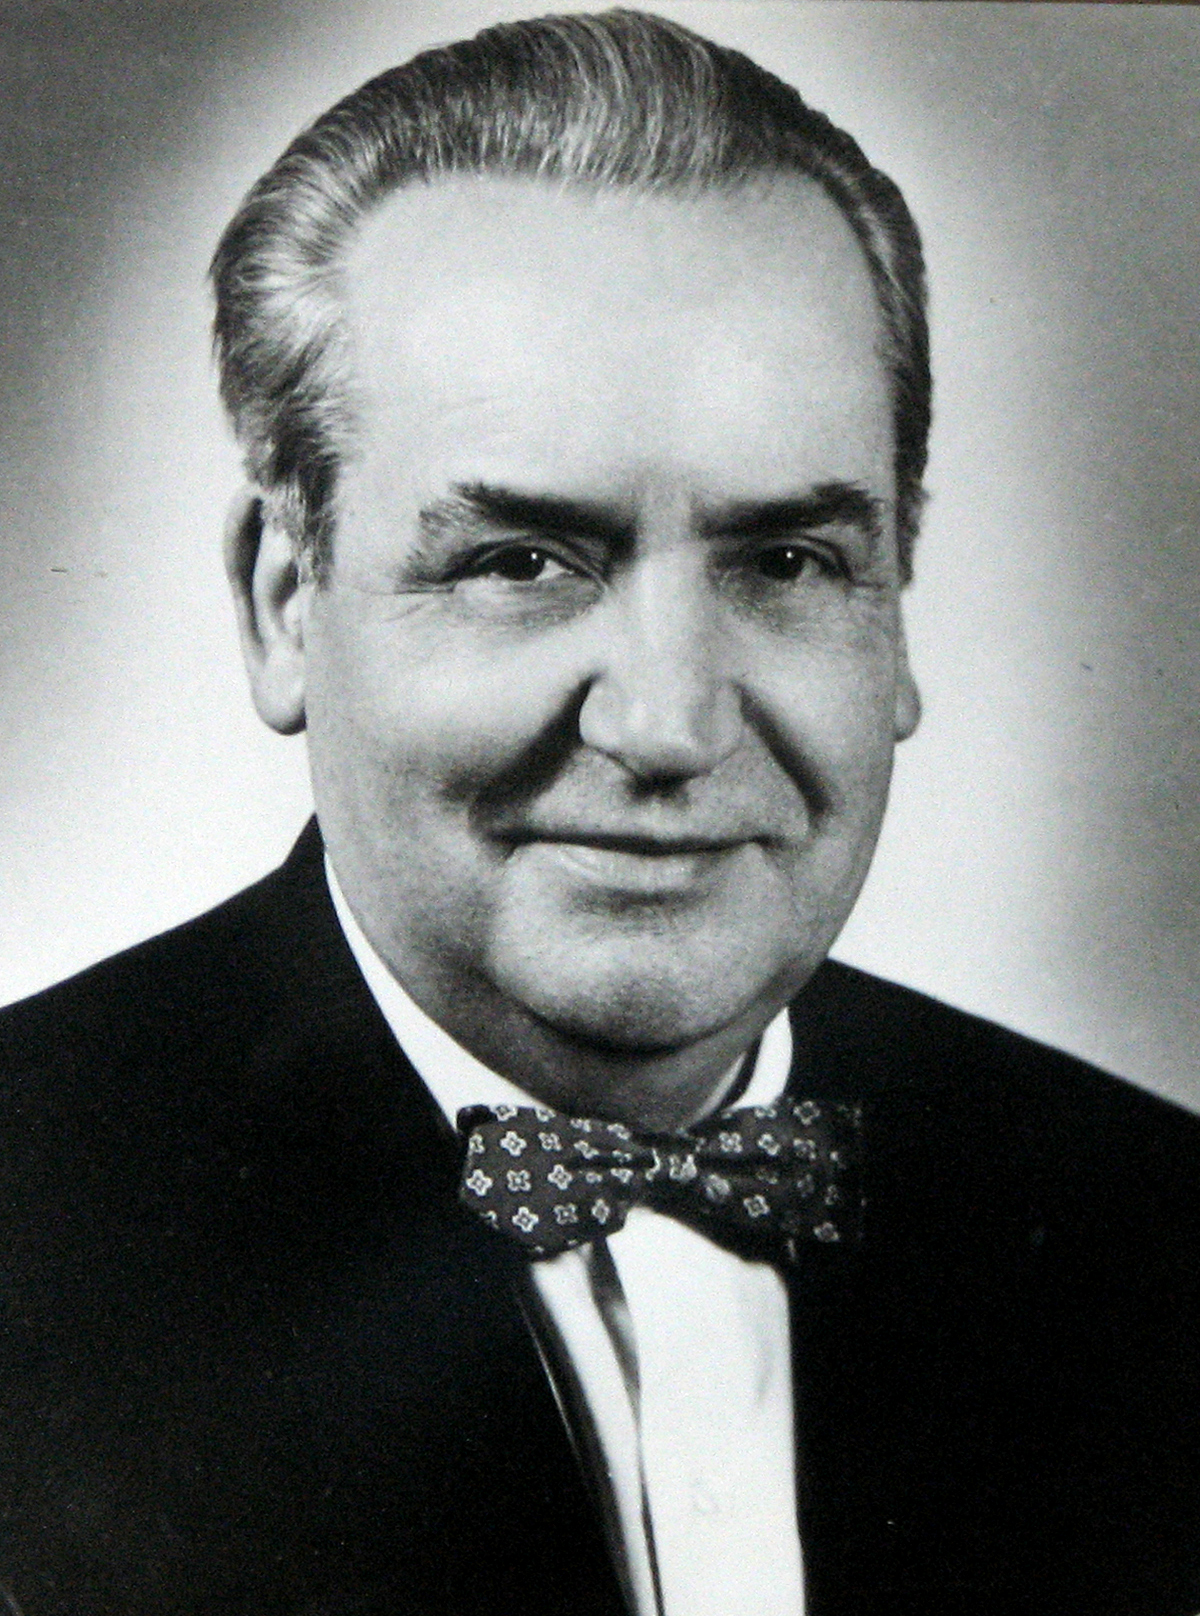 Mayor J. Adalbert Paris